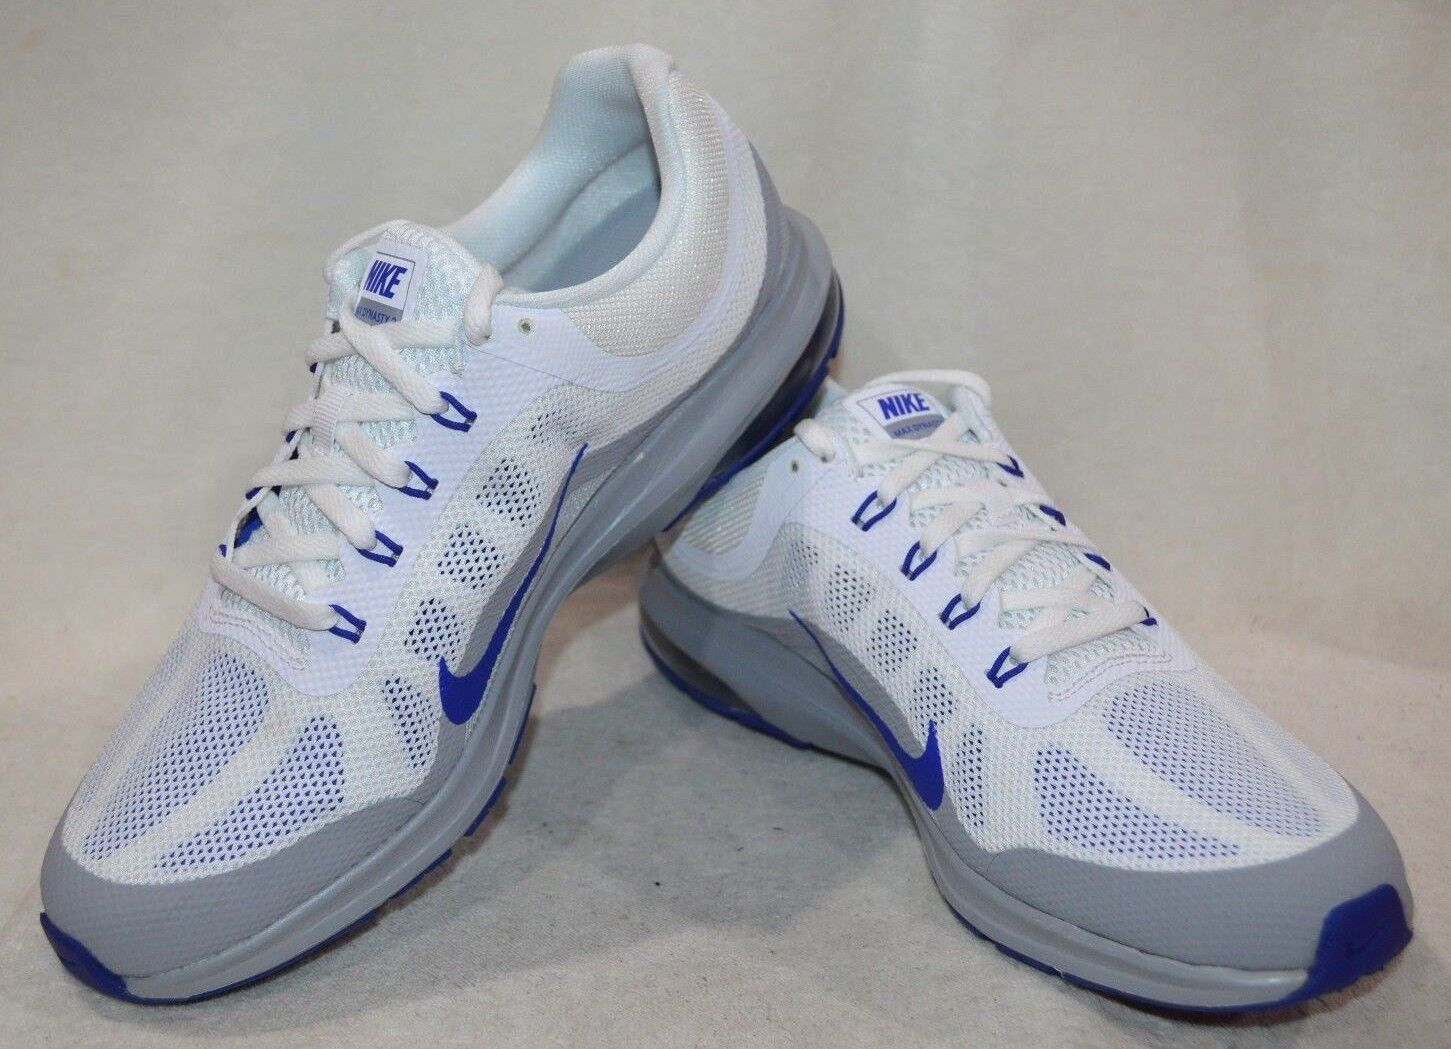 Nike Air Max Dynasty 2 White bluee Grey Men's Running shoes - Assorted Sizes NWB